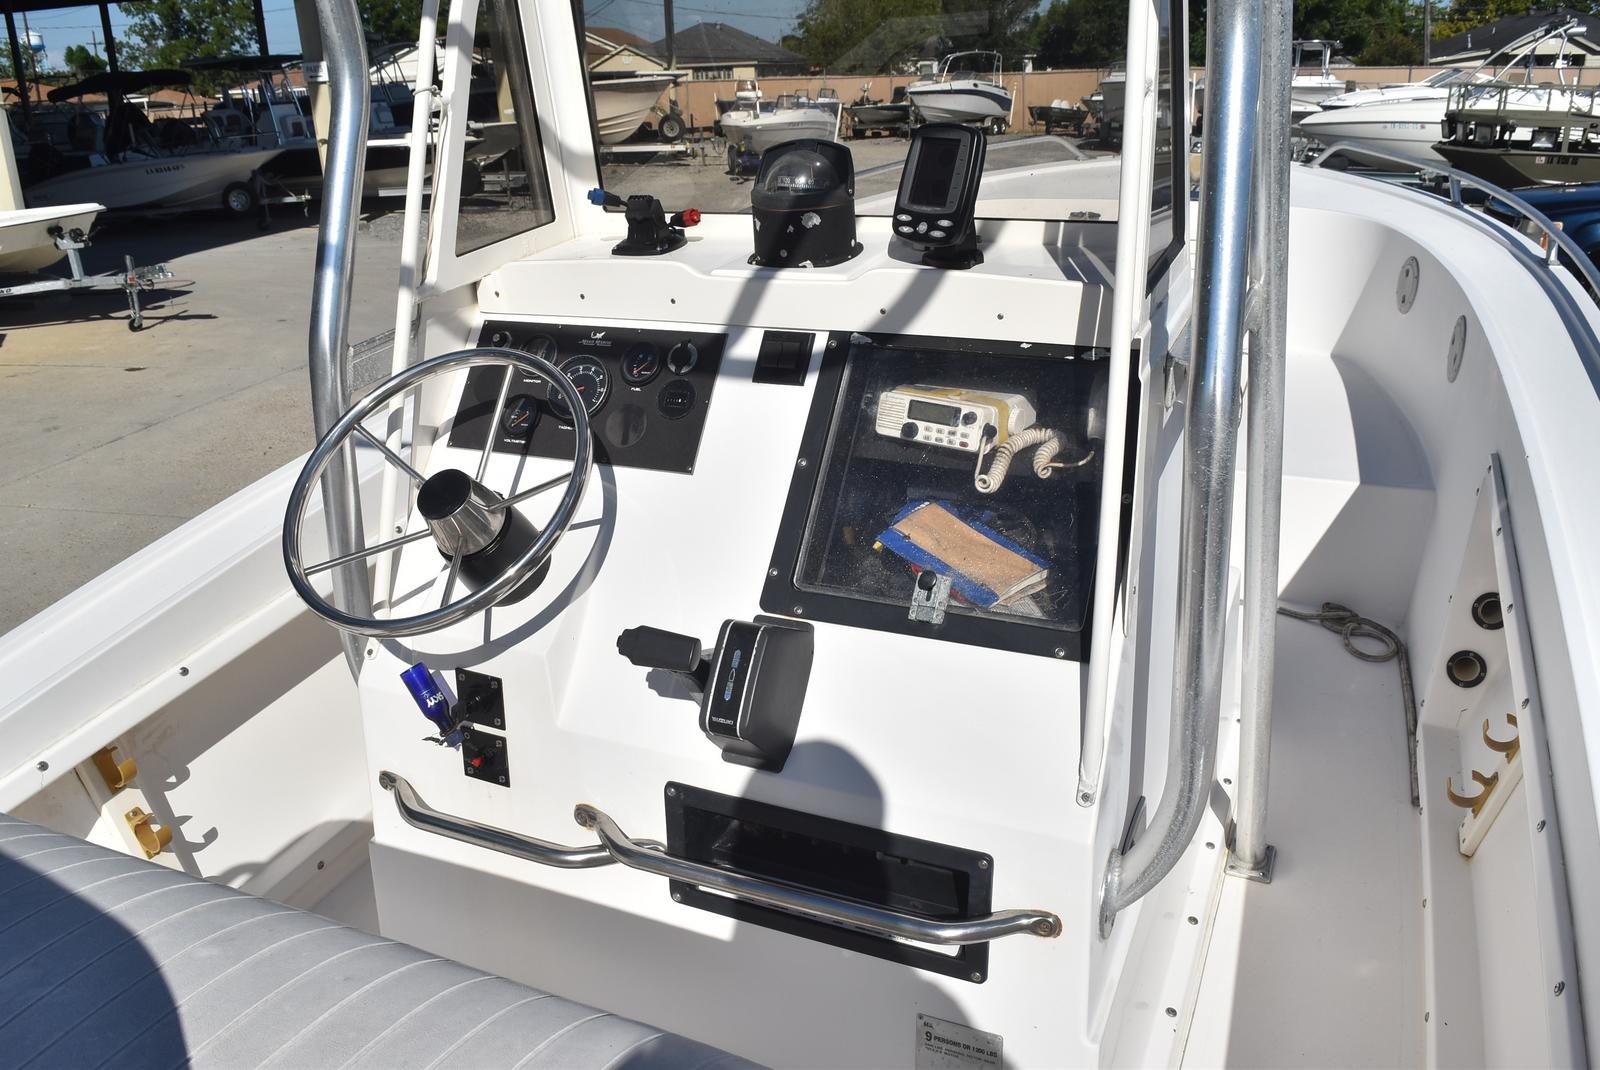 1996 Mako boat for sale, model of the boat is 22 Mako & Image # 18 of 26